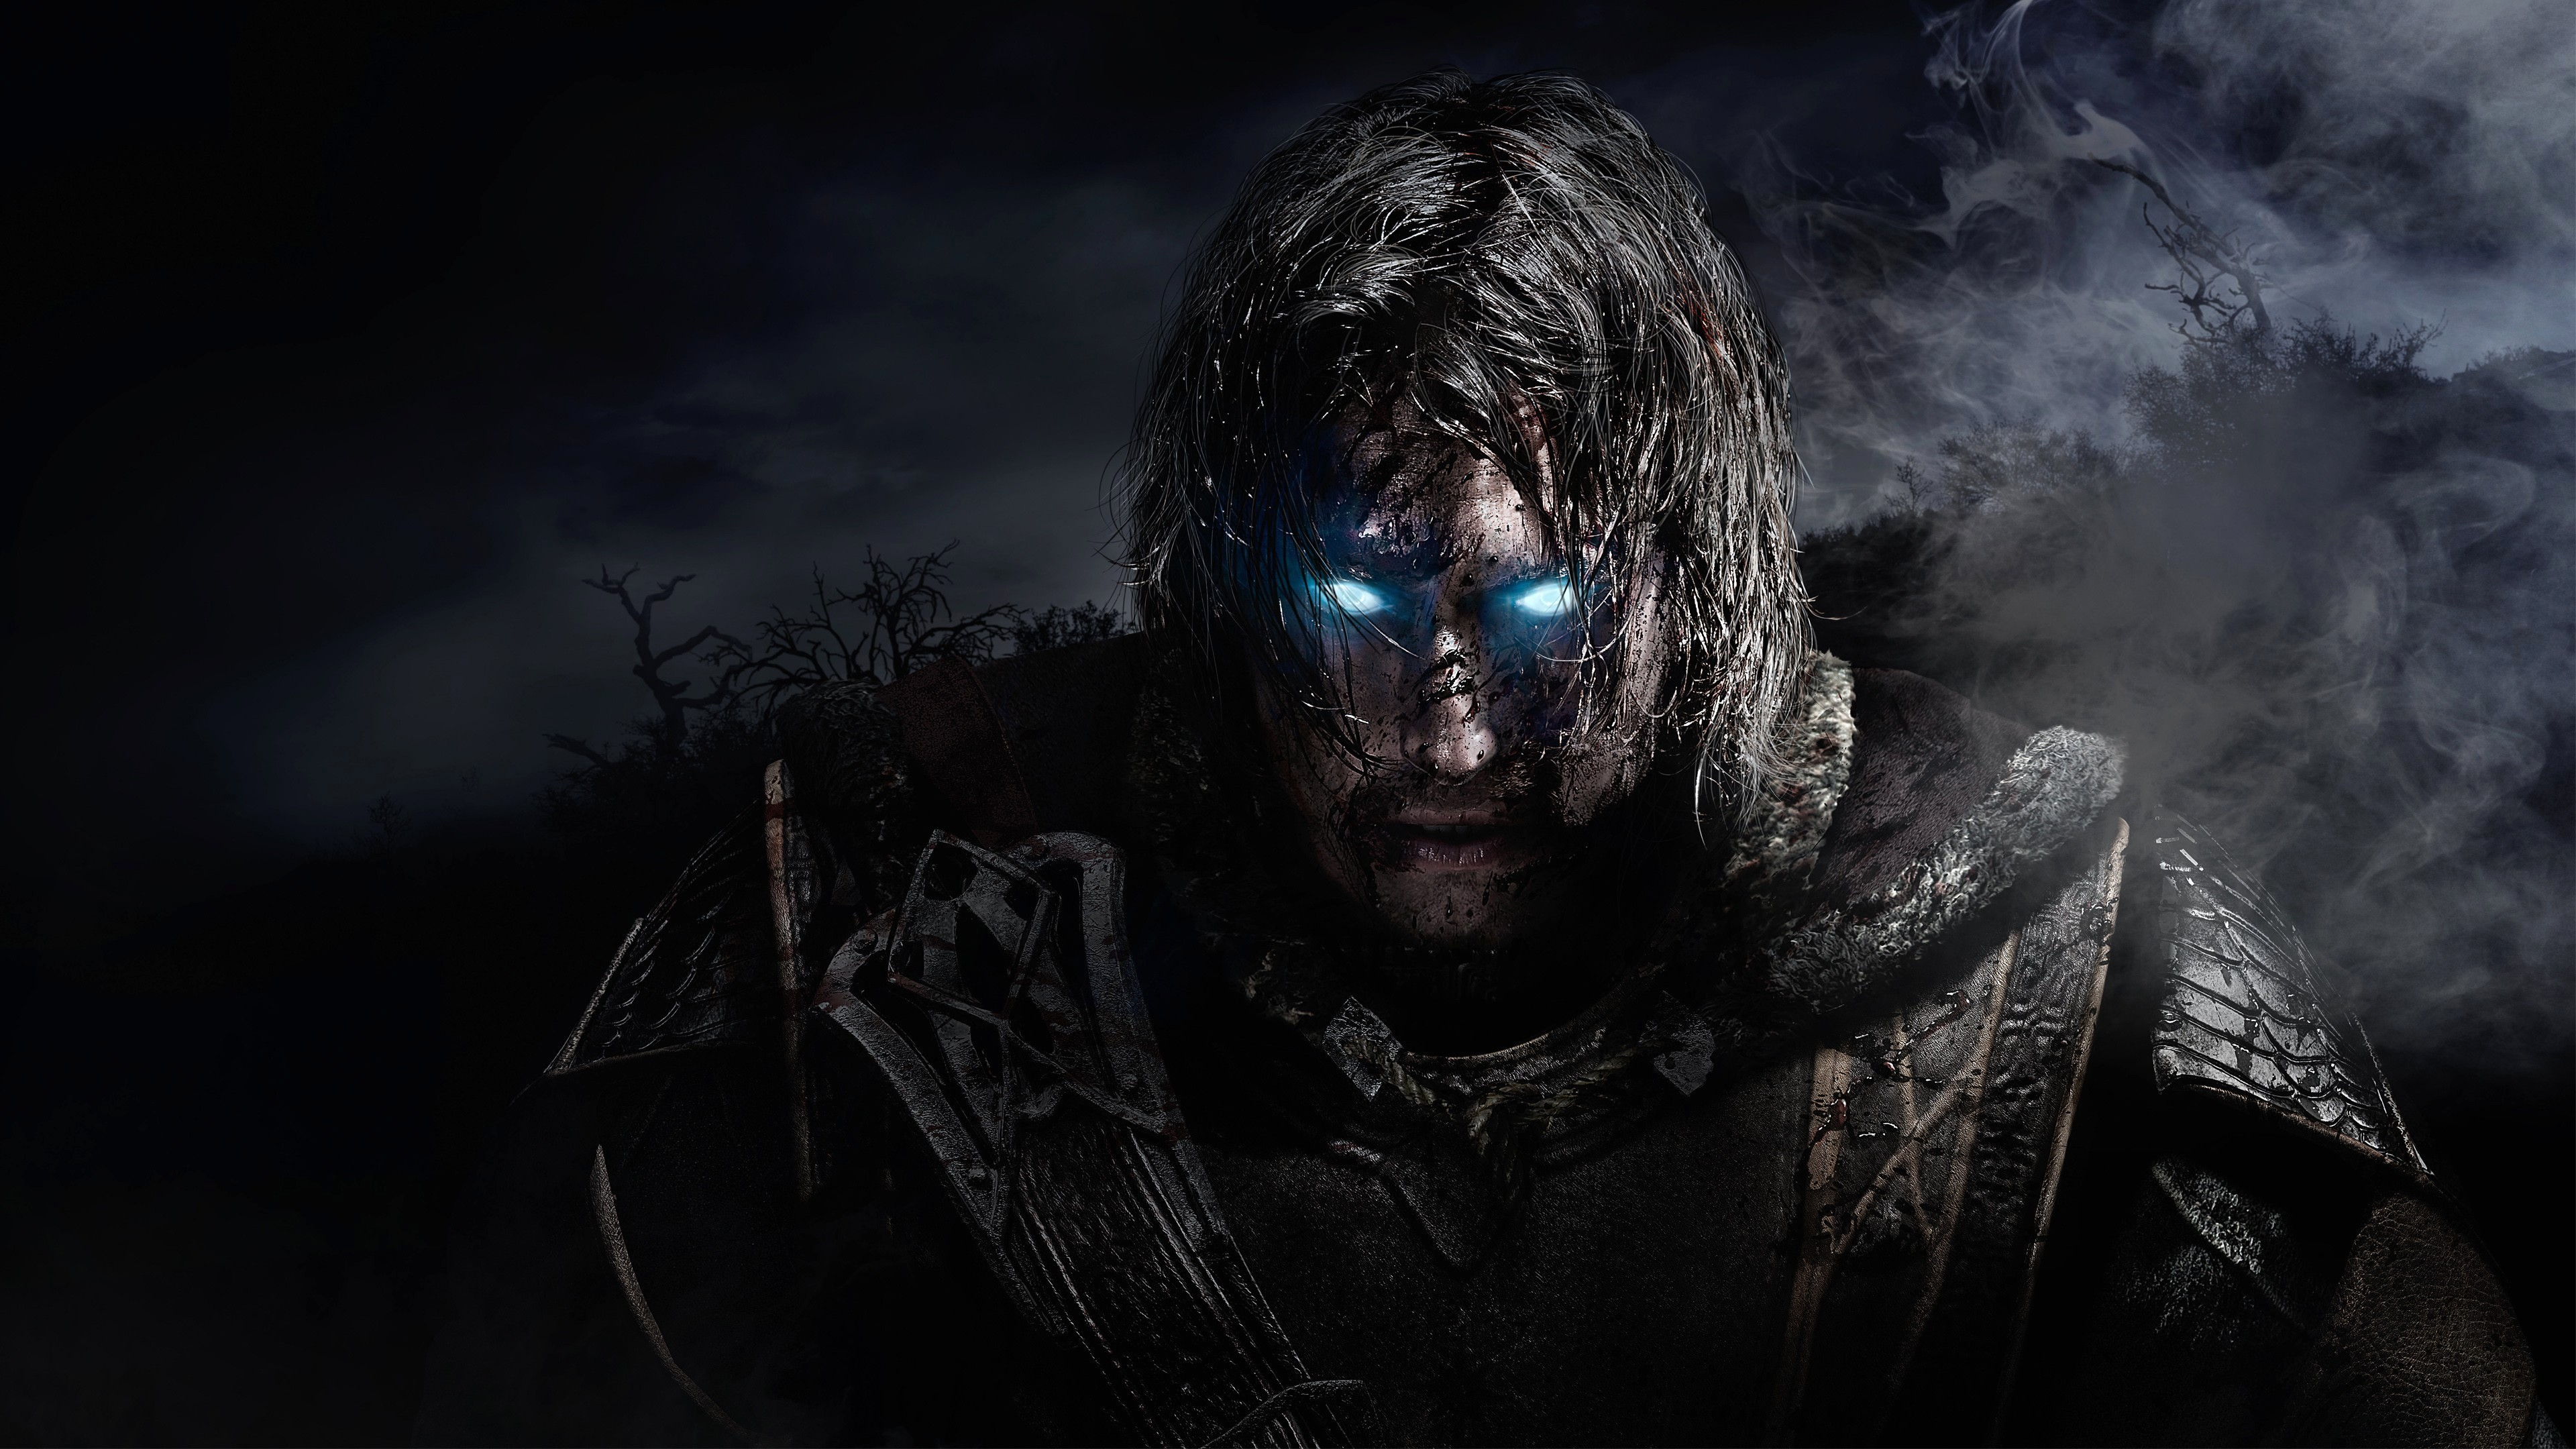 latest 4k wallpapers,darkness,digital compositing,pc game,action adventure game,fictional character